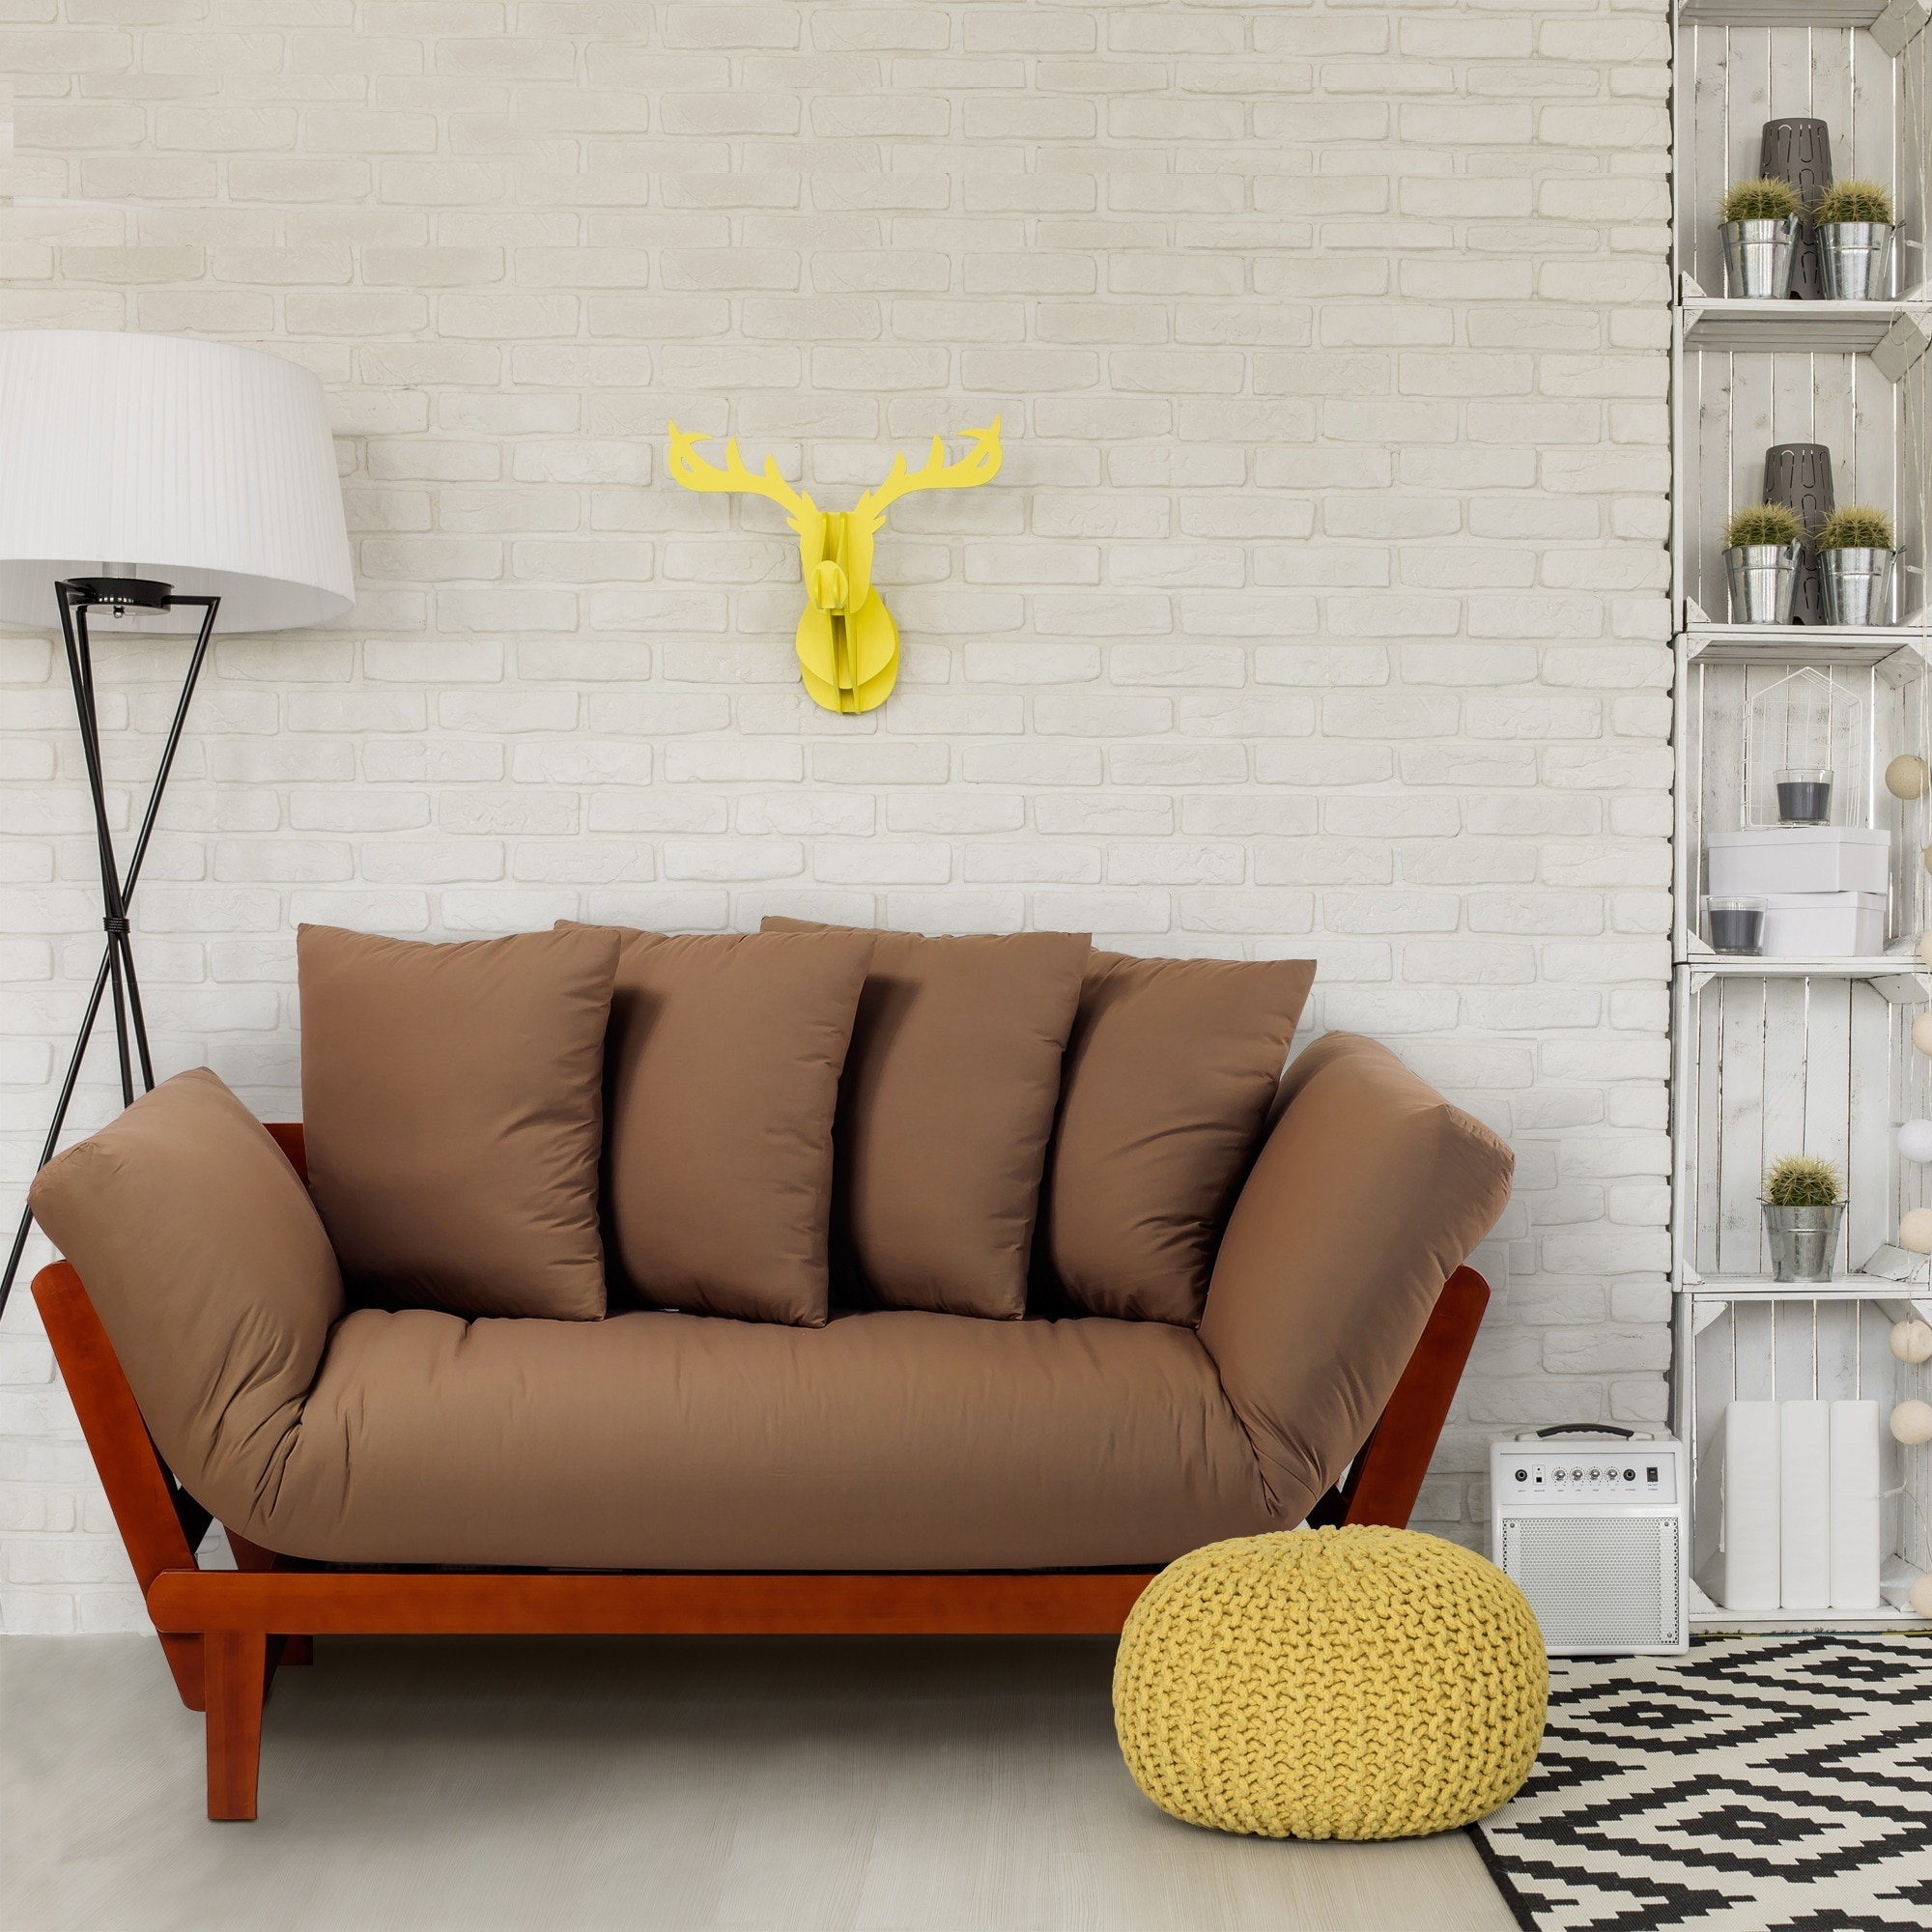 Casual Lounger Sofa Bed (Brown), Size Twin (Cotton)